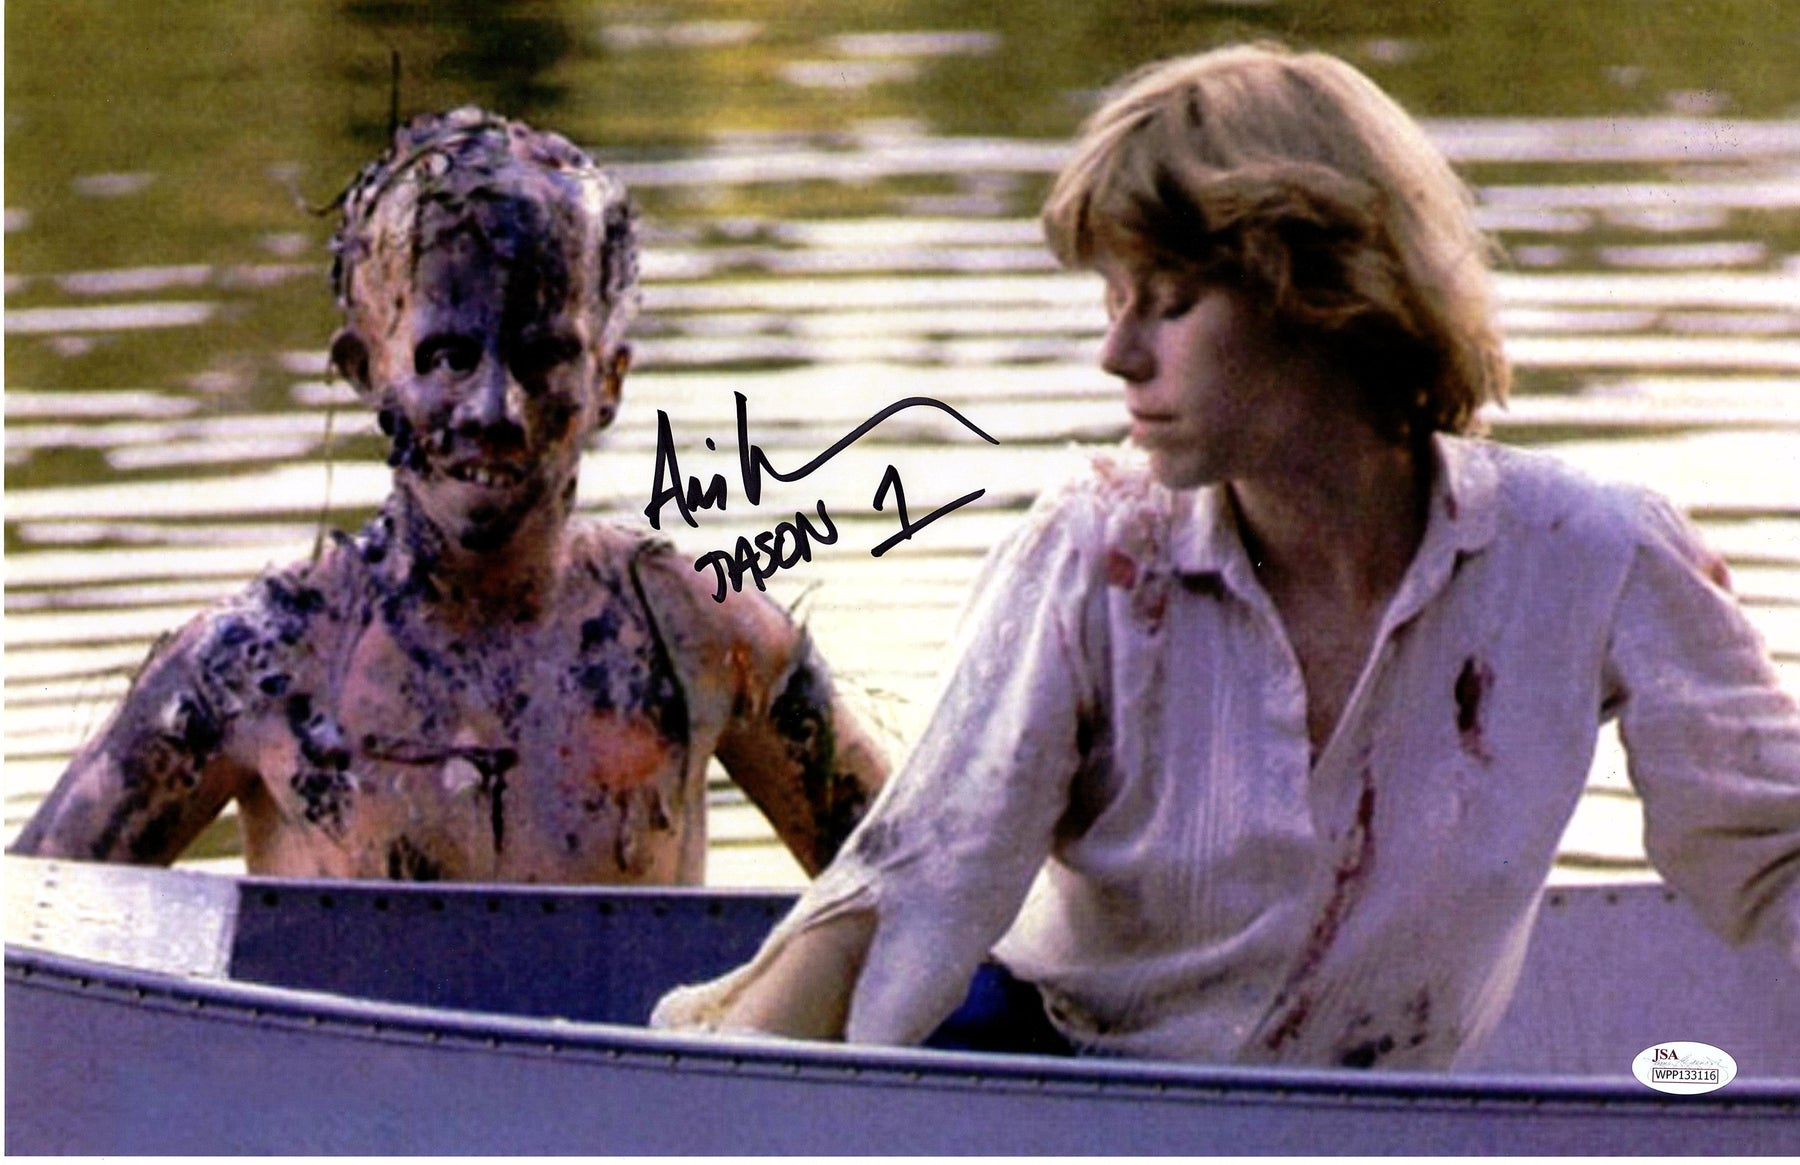 Ari Lehman Autograph 11x17 Photo Friday the 13th Signed Jason Voorhees JSA COA 10